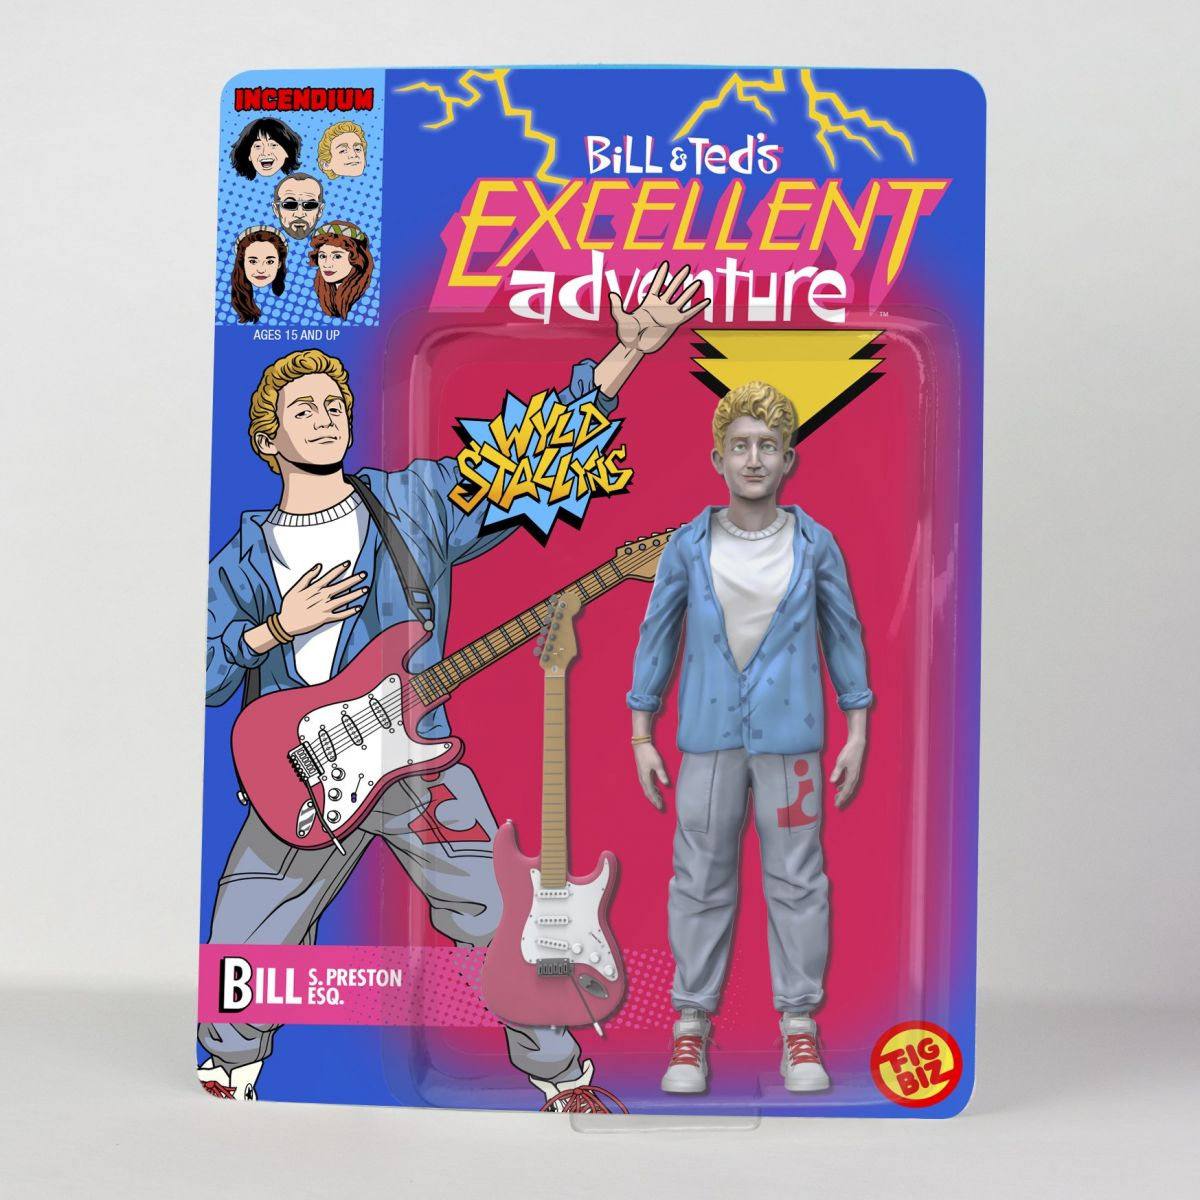 Incendium Releases Bill And Ted Merchandise To Celebrate Film's 30th